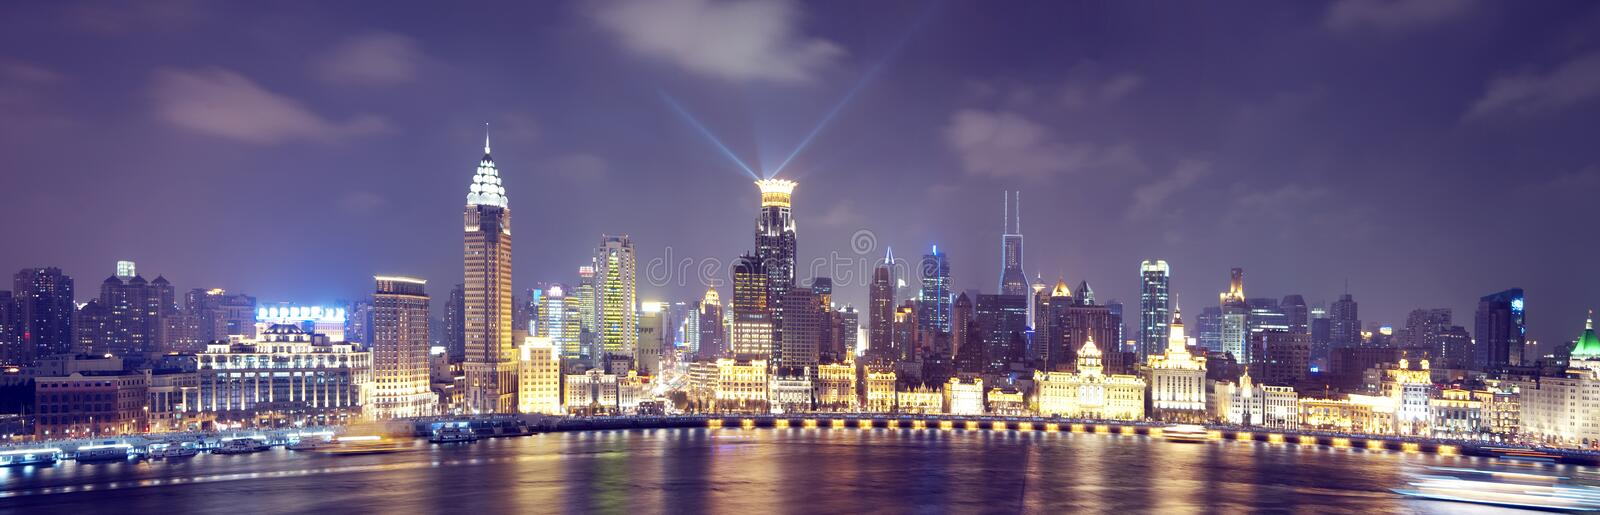 Night view of Shanghai China royalty free stock photography